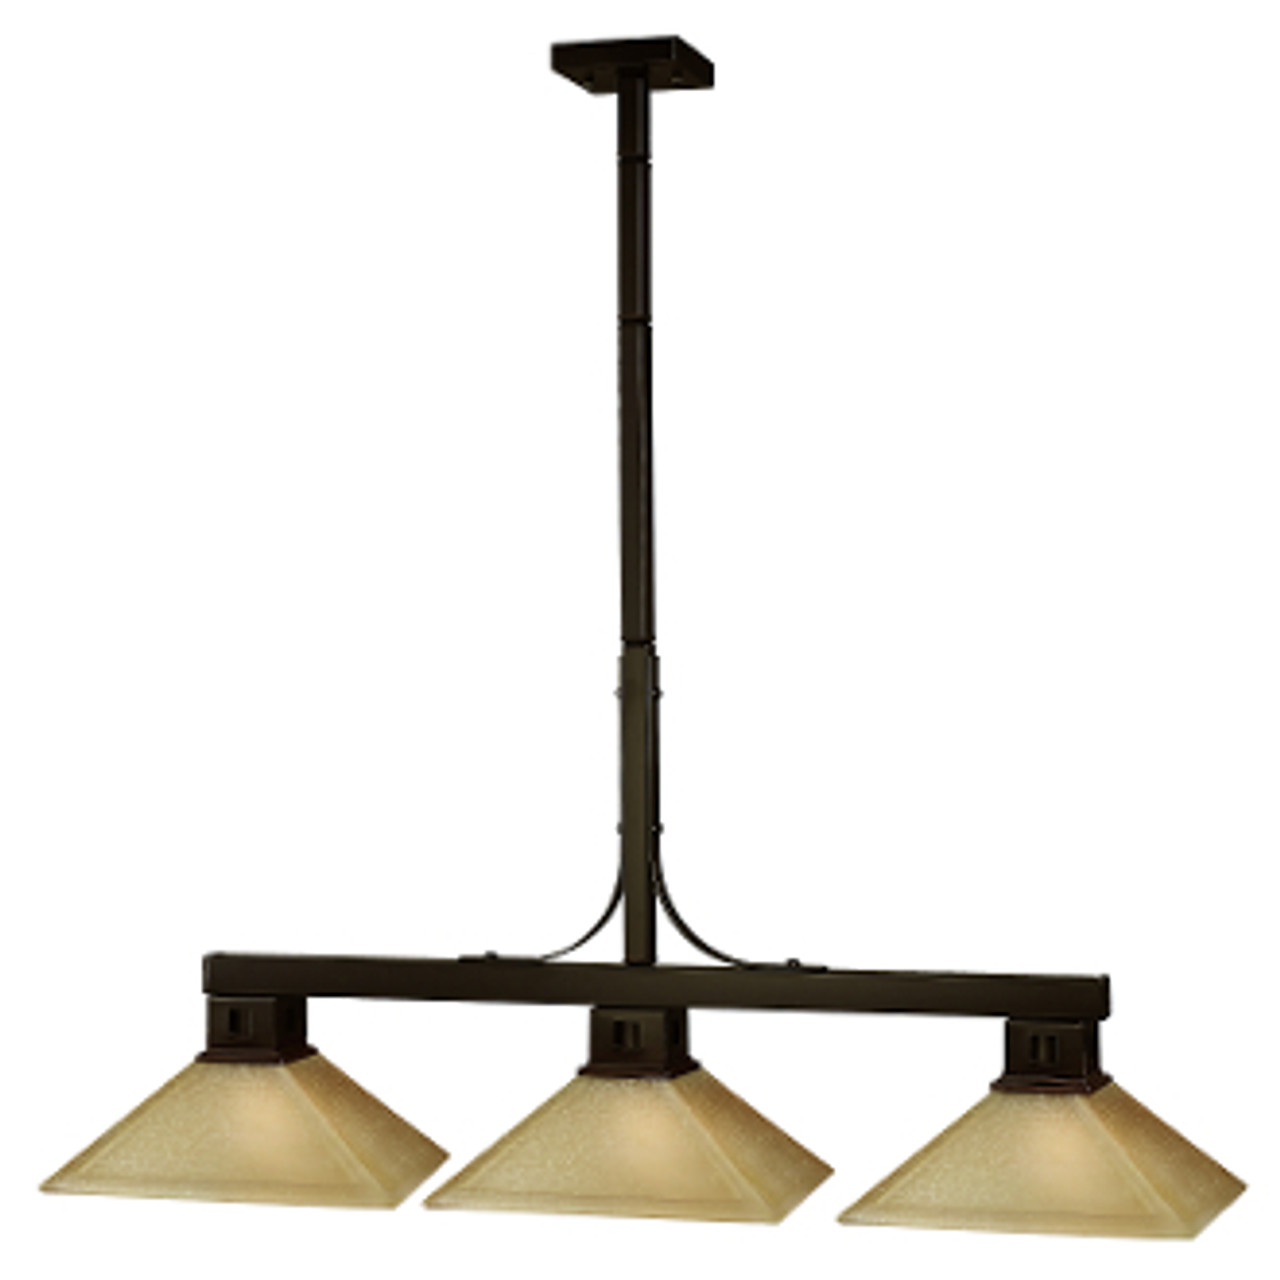 Flatwater Billiard Light Fixture